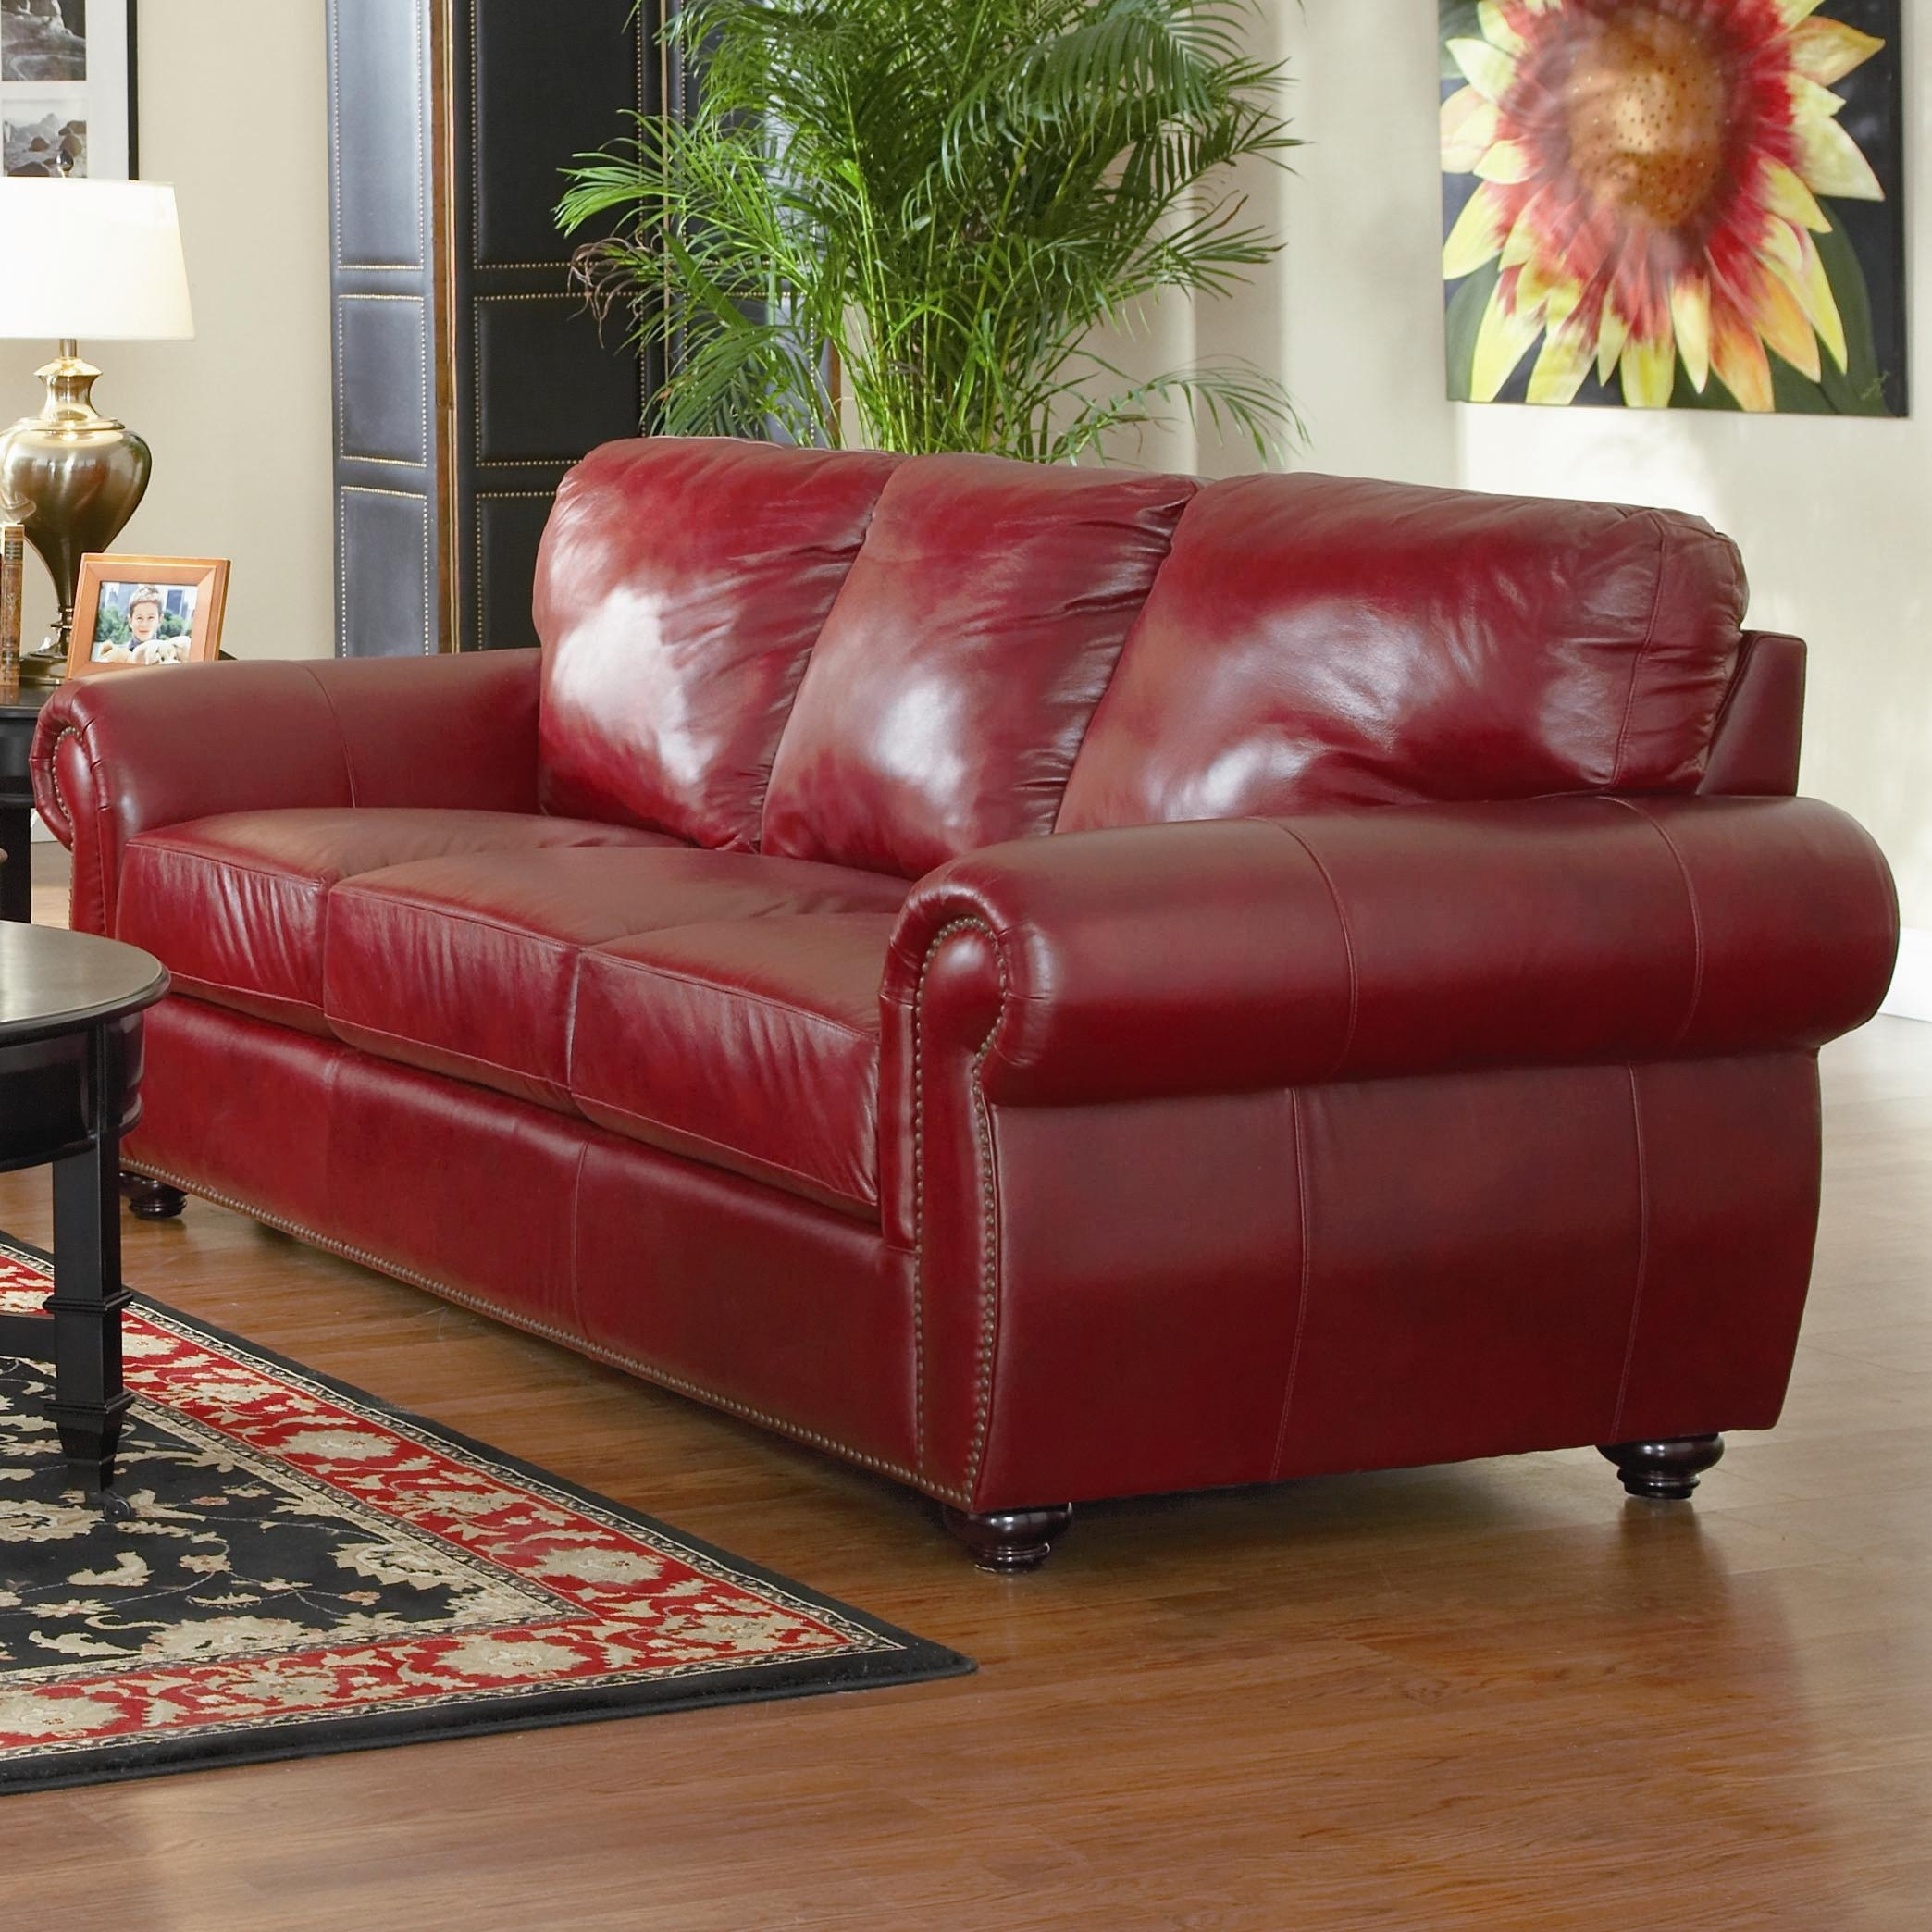 Simple Red Leather Tufted Backrest Loveseat With Shelter Armrest And for Red Leather Couches and Loveseats (Image 10 of 15)